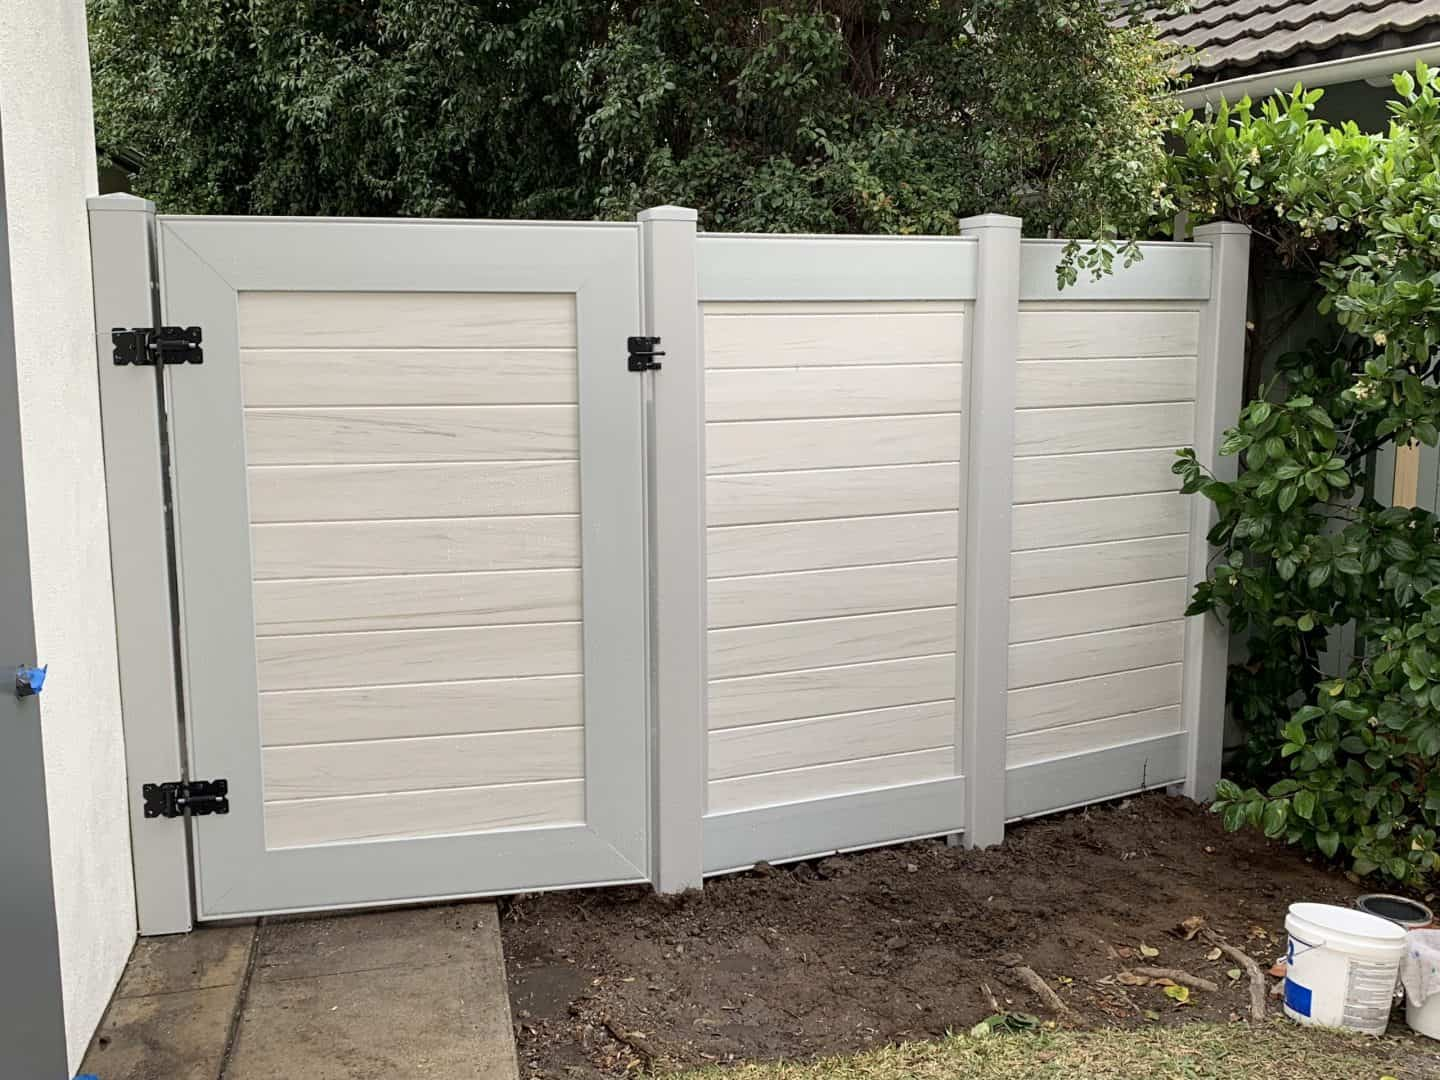 Gated Fencing